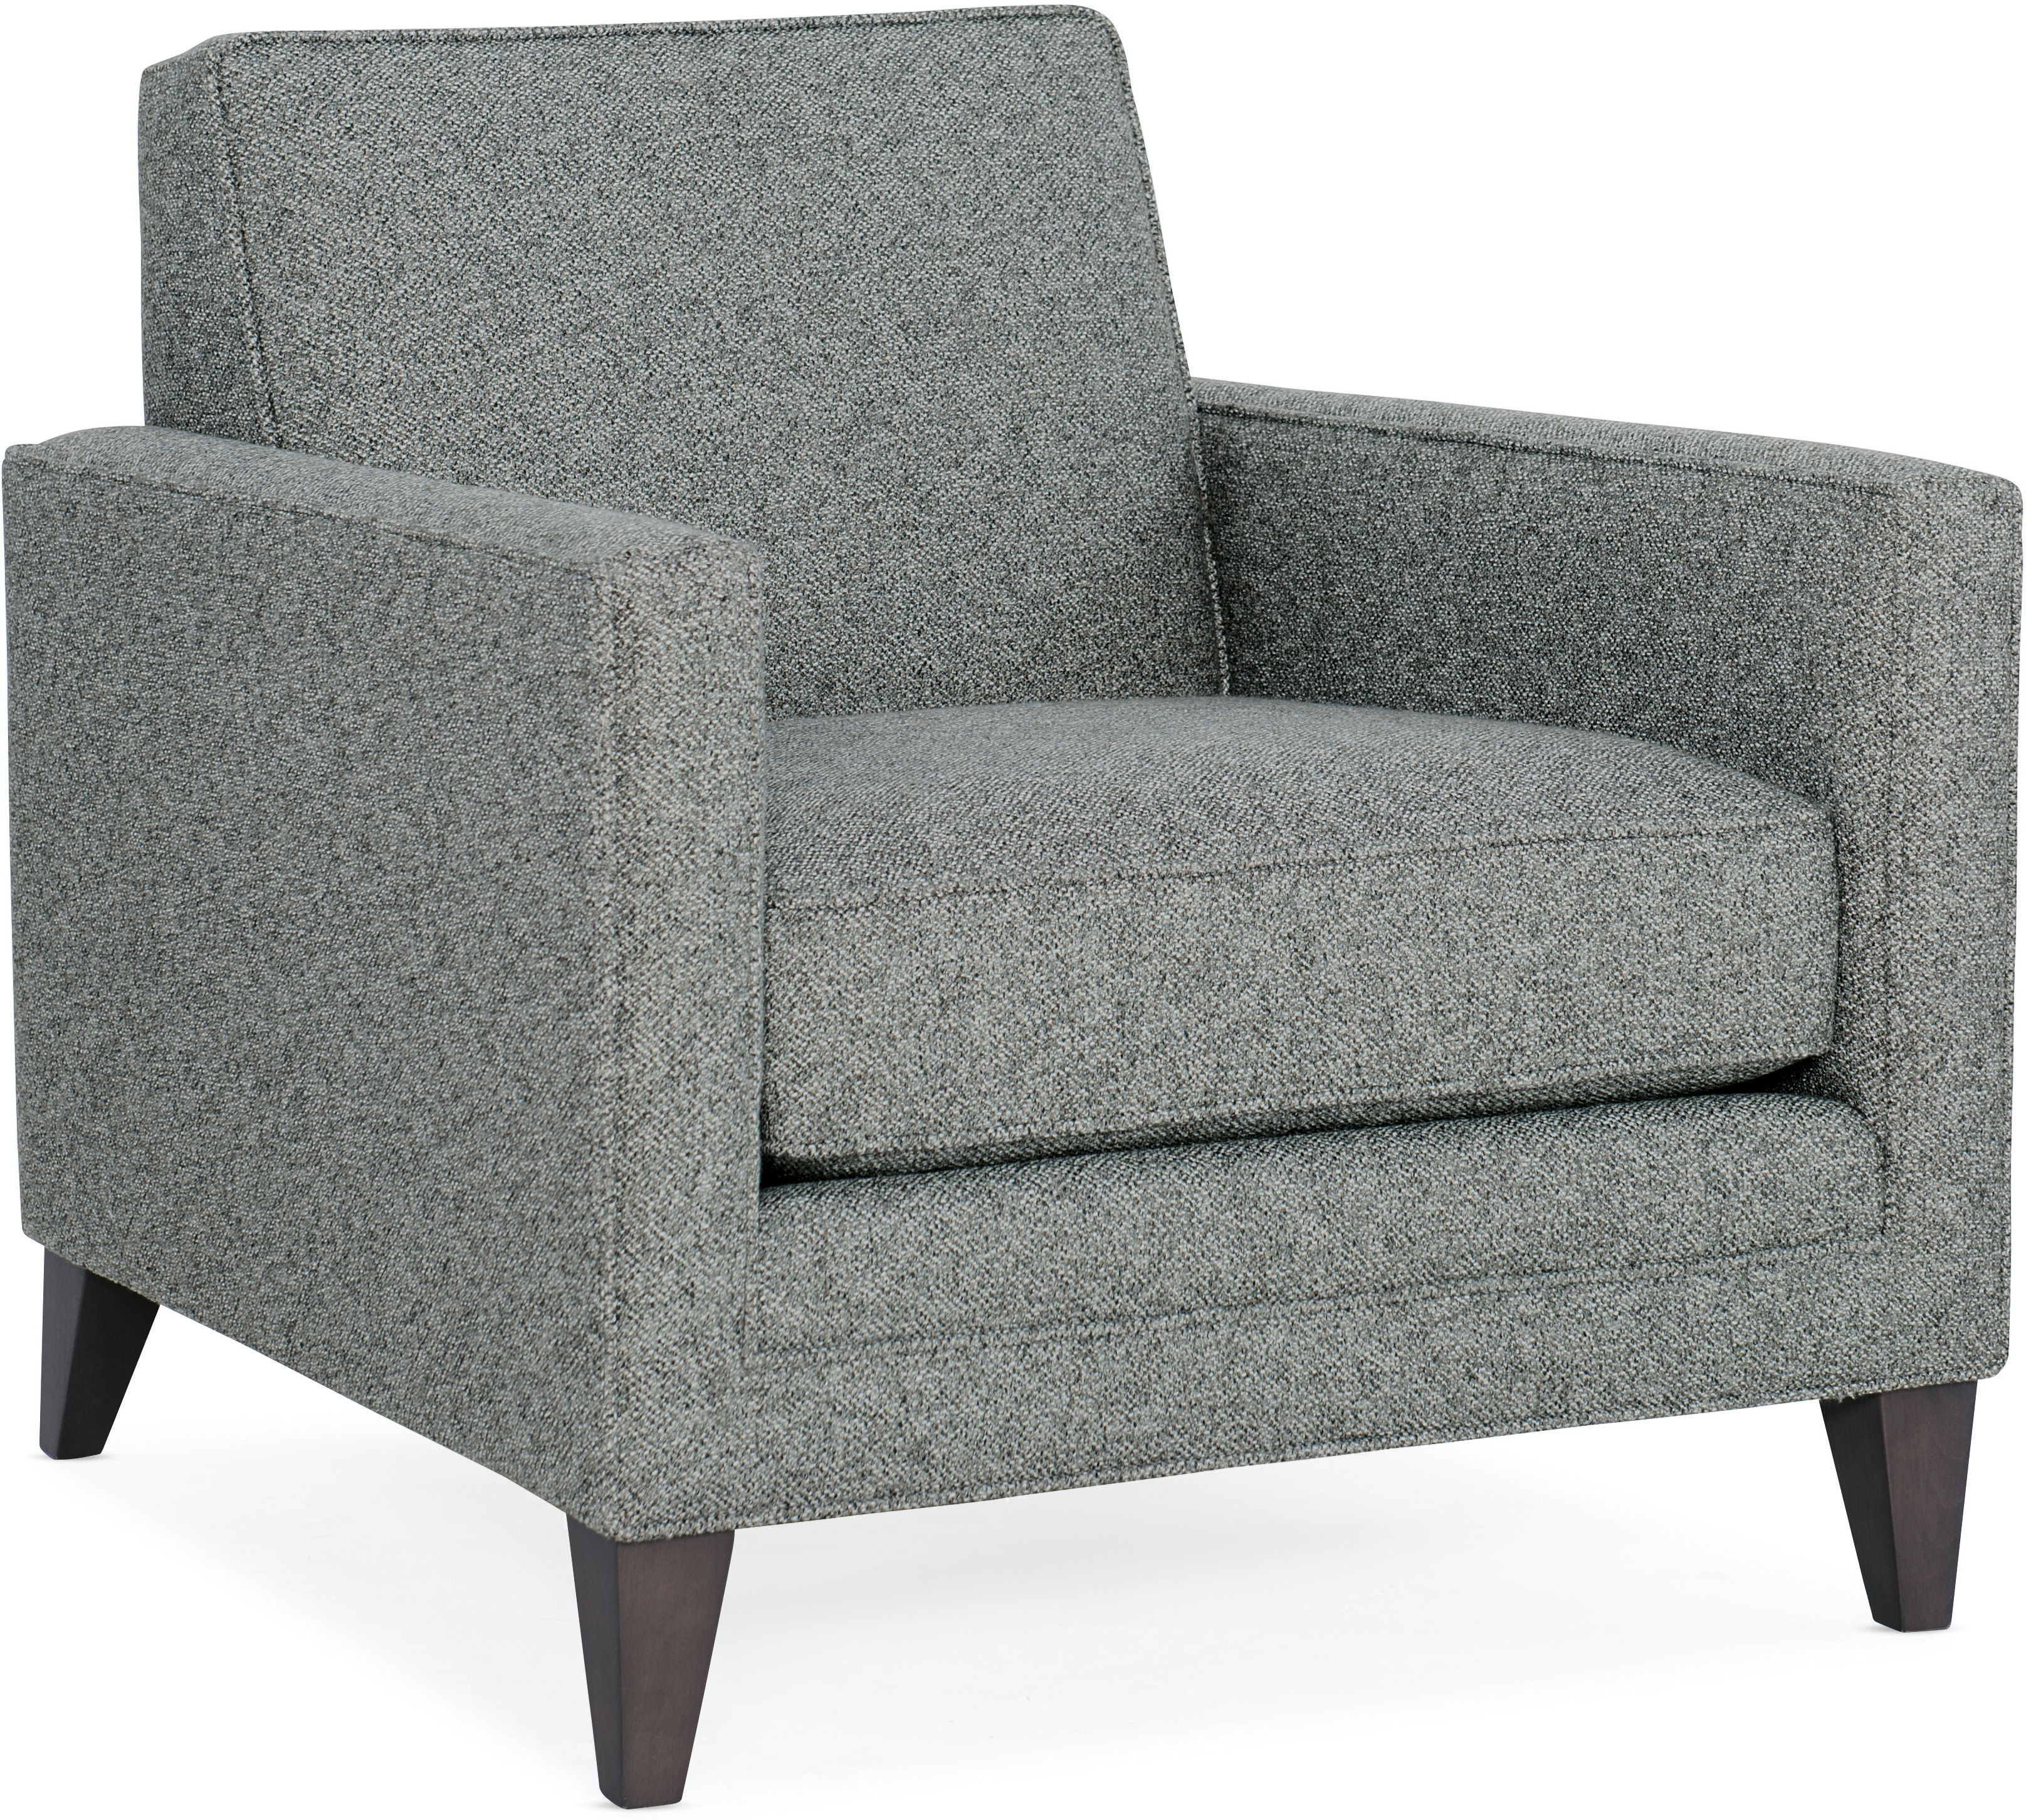 Phenomenal Marq Living Room Elana Accent Chair With Arms 796 2000 Onthecornerstone Fun Painted Chair Ideas Images Onthecornerstoneorg